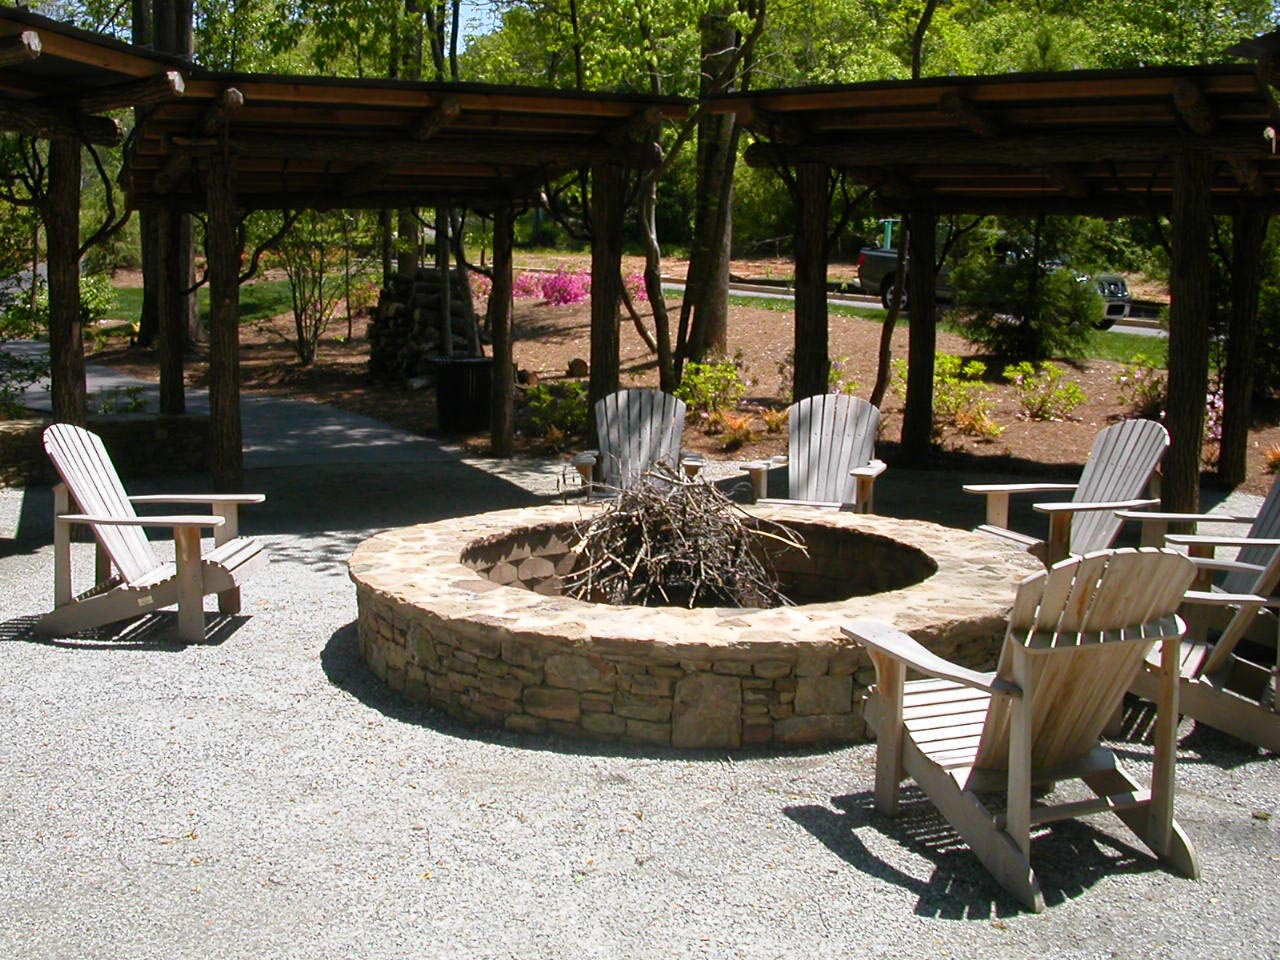 Fire pit seating area ideas fire pit design ideas for Outdoor sitting area ideas